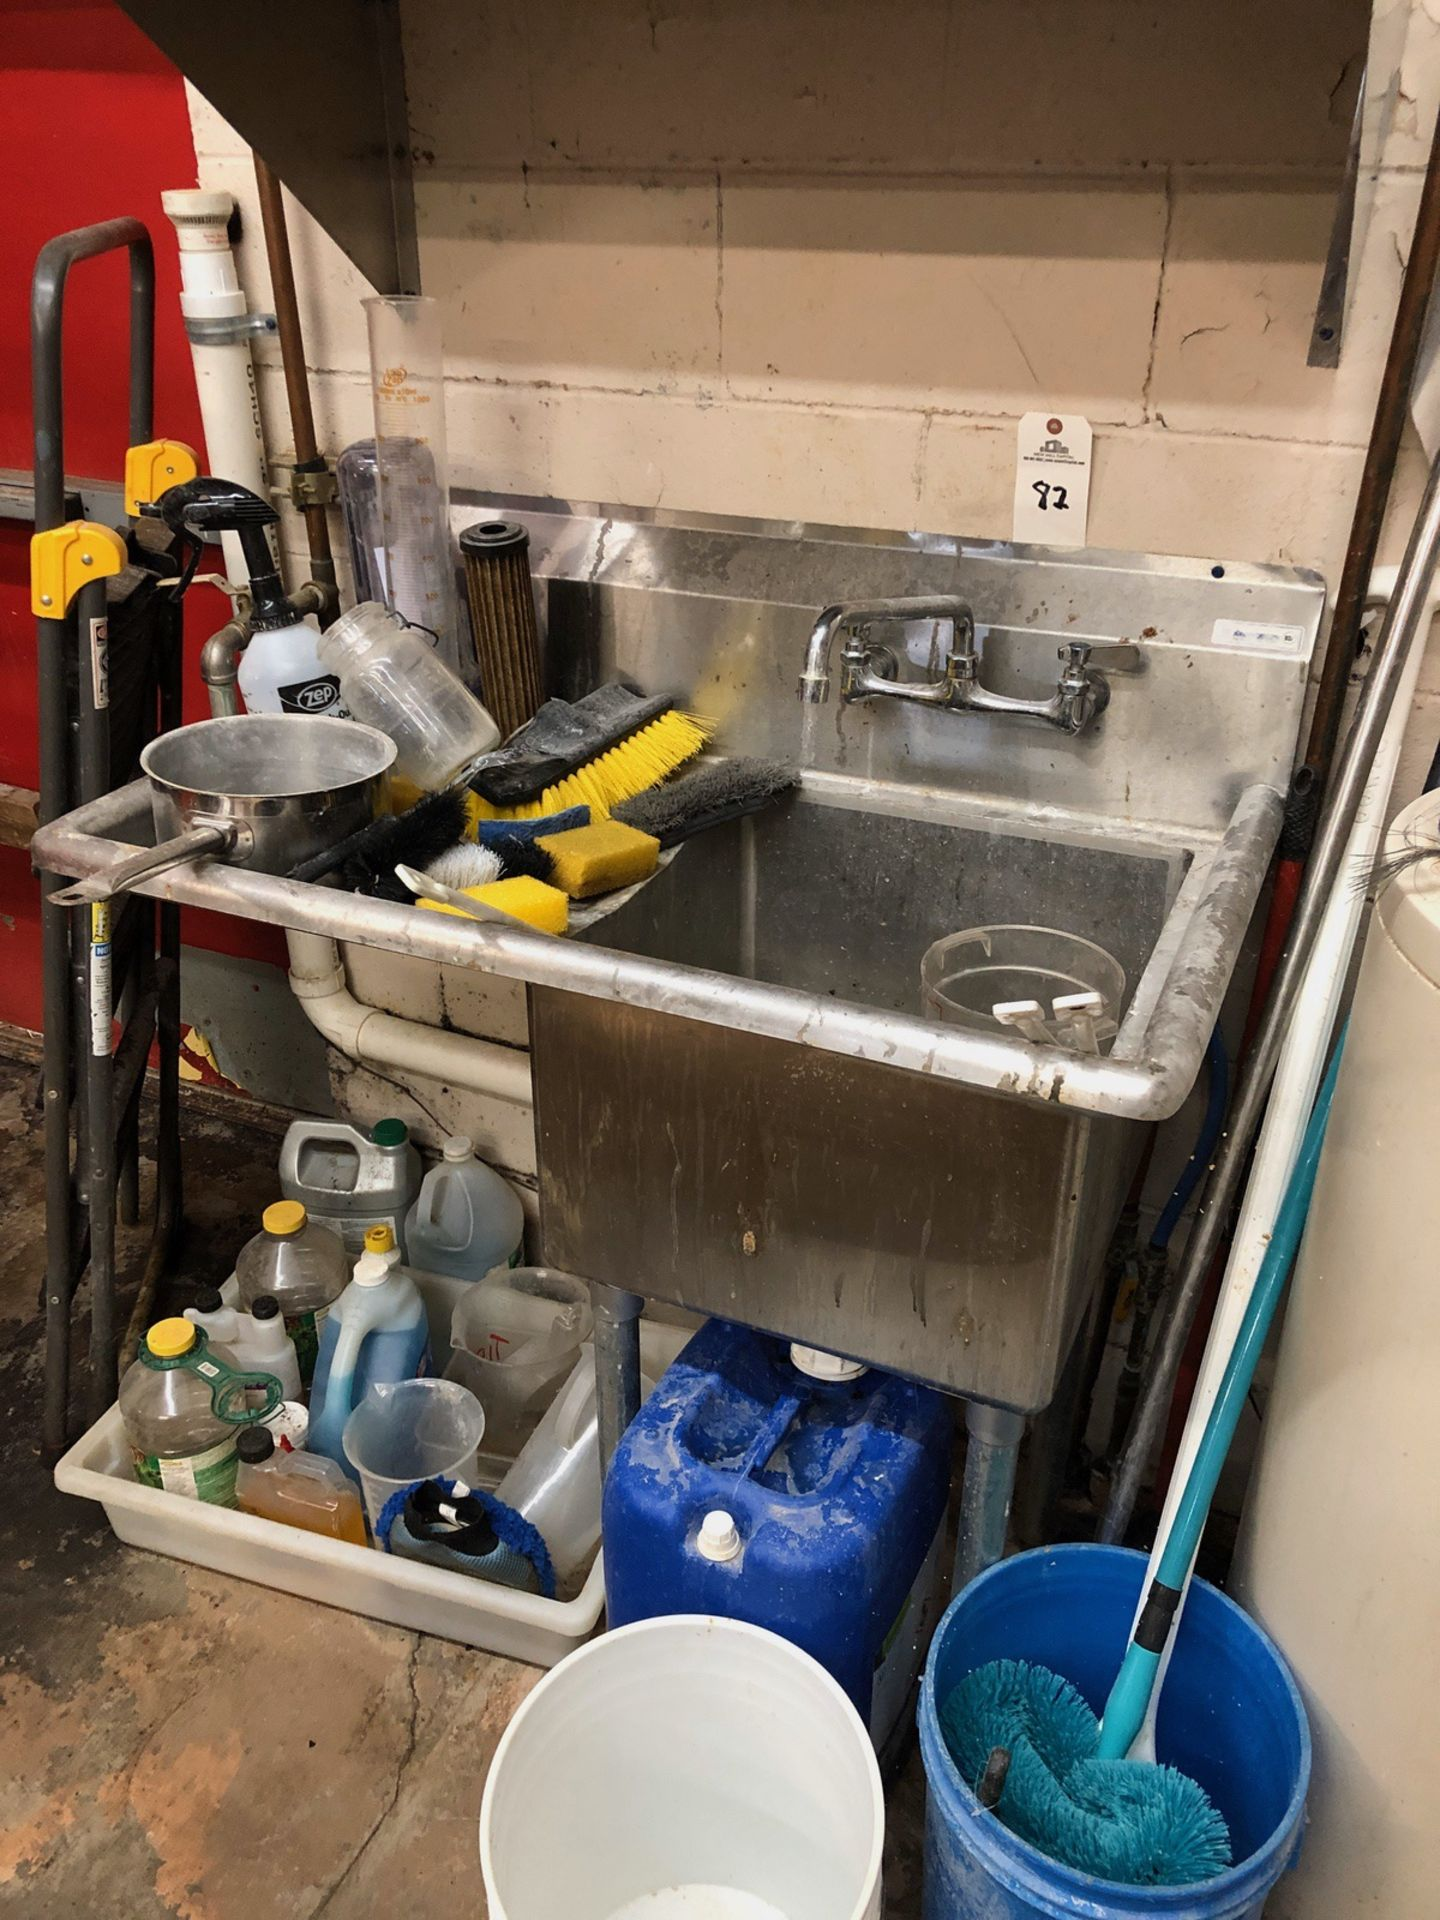 Lot 82 - Stainless Steel Sink | Rig Fee: $100